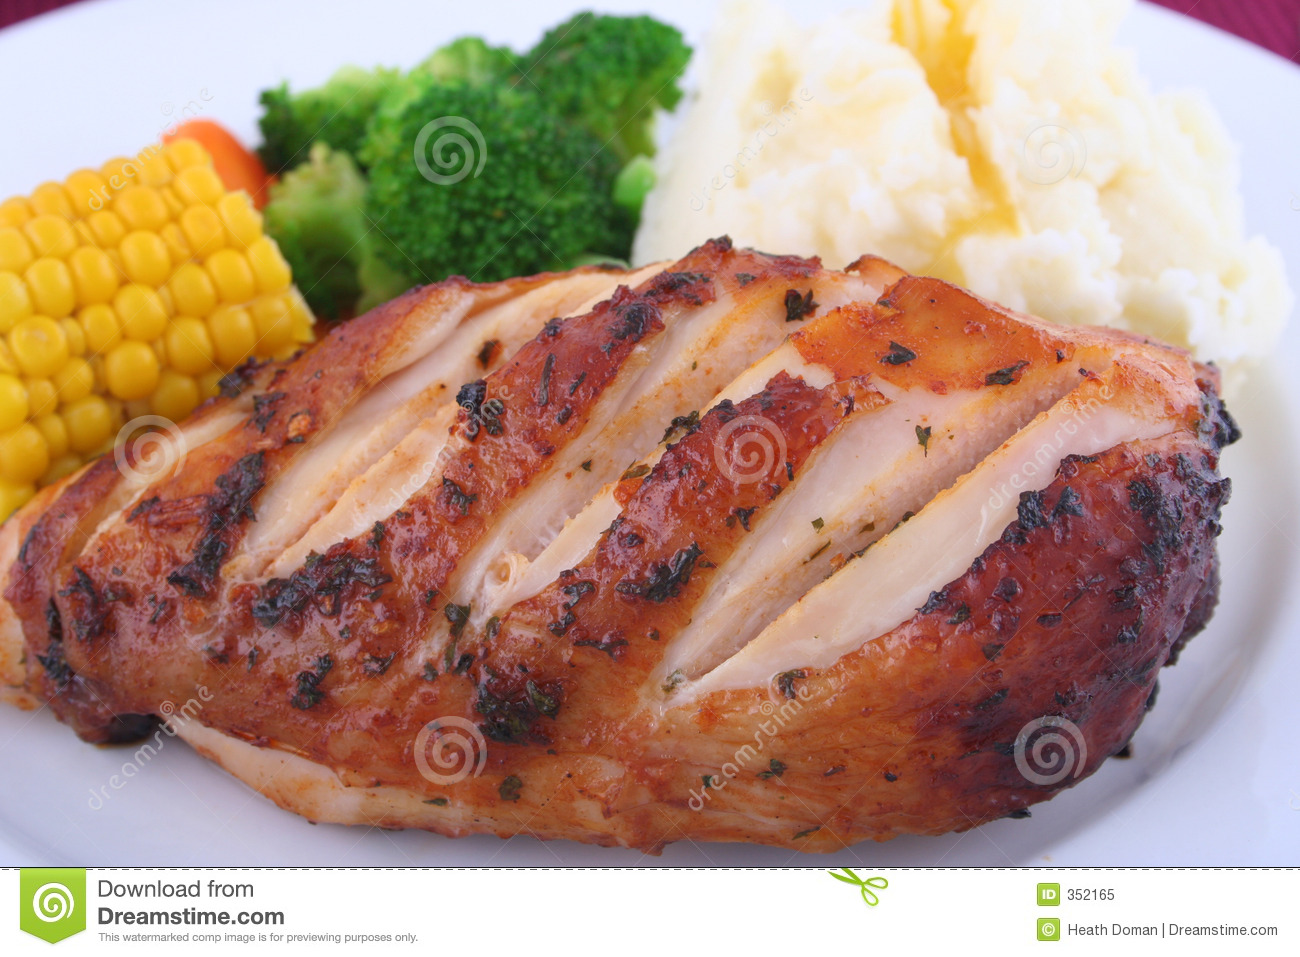 Chicken Dinner Royalty Free Stock Photo - Image: 352165